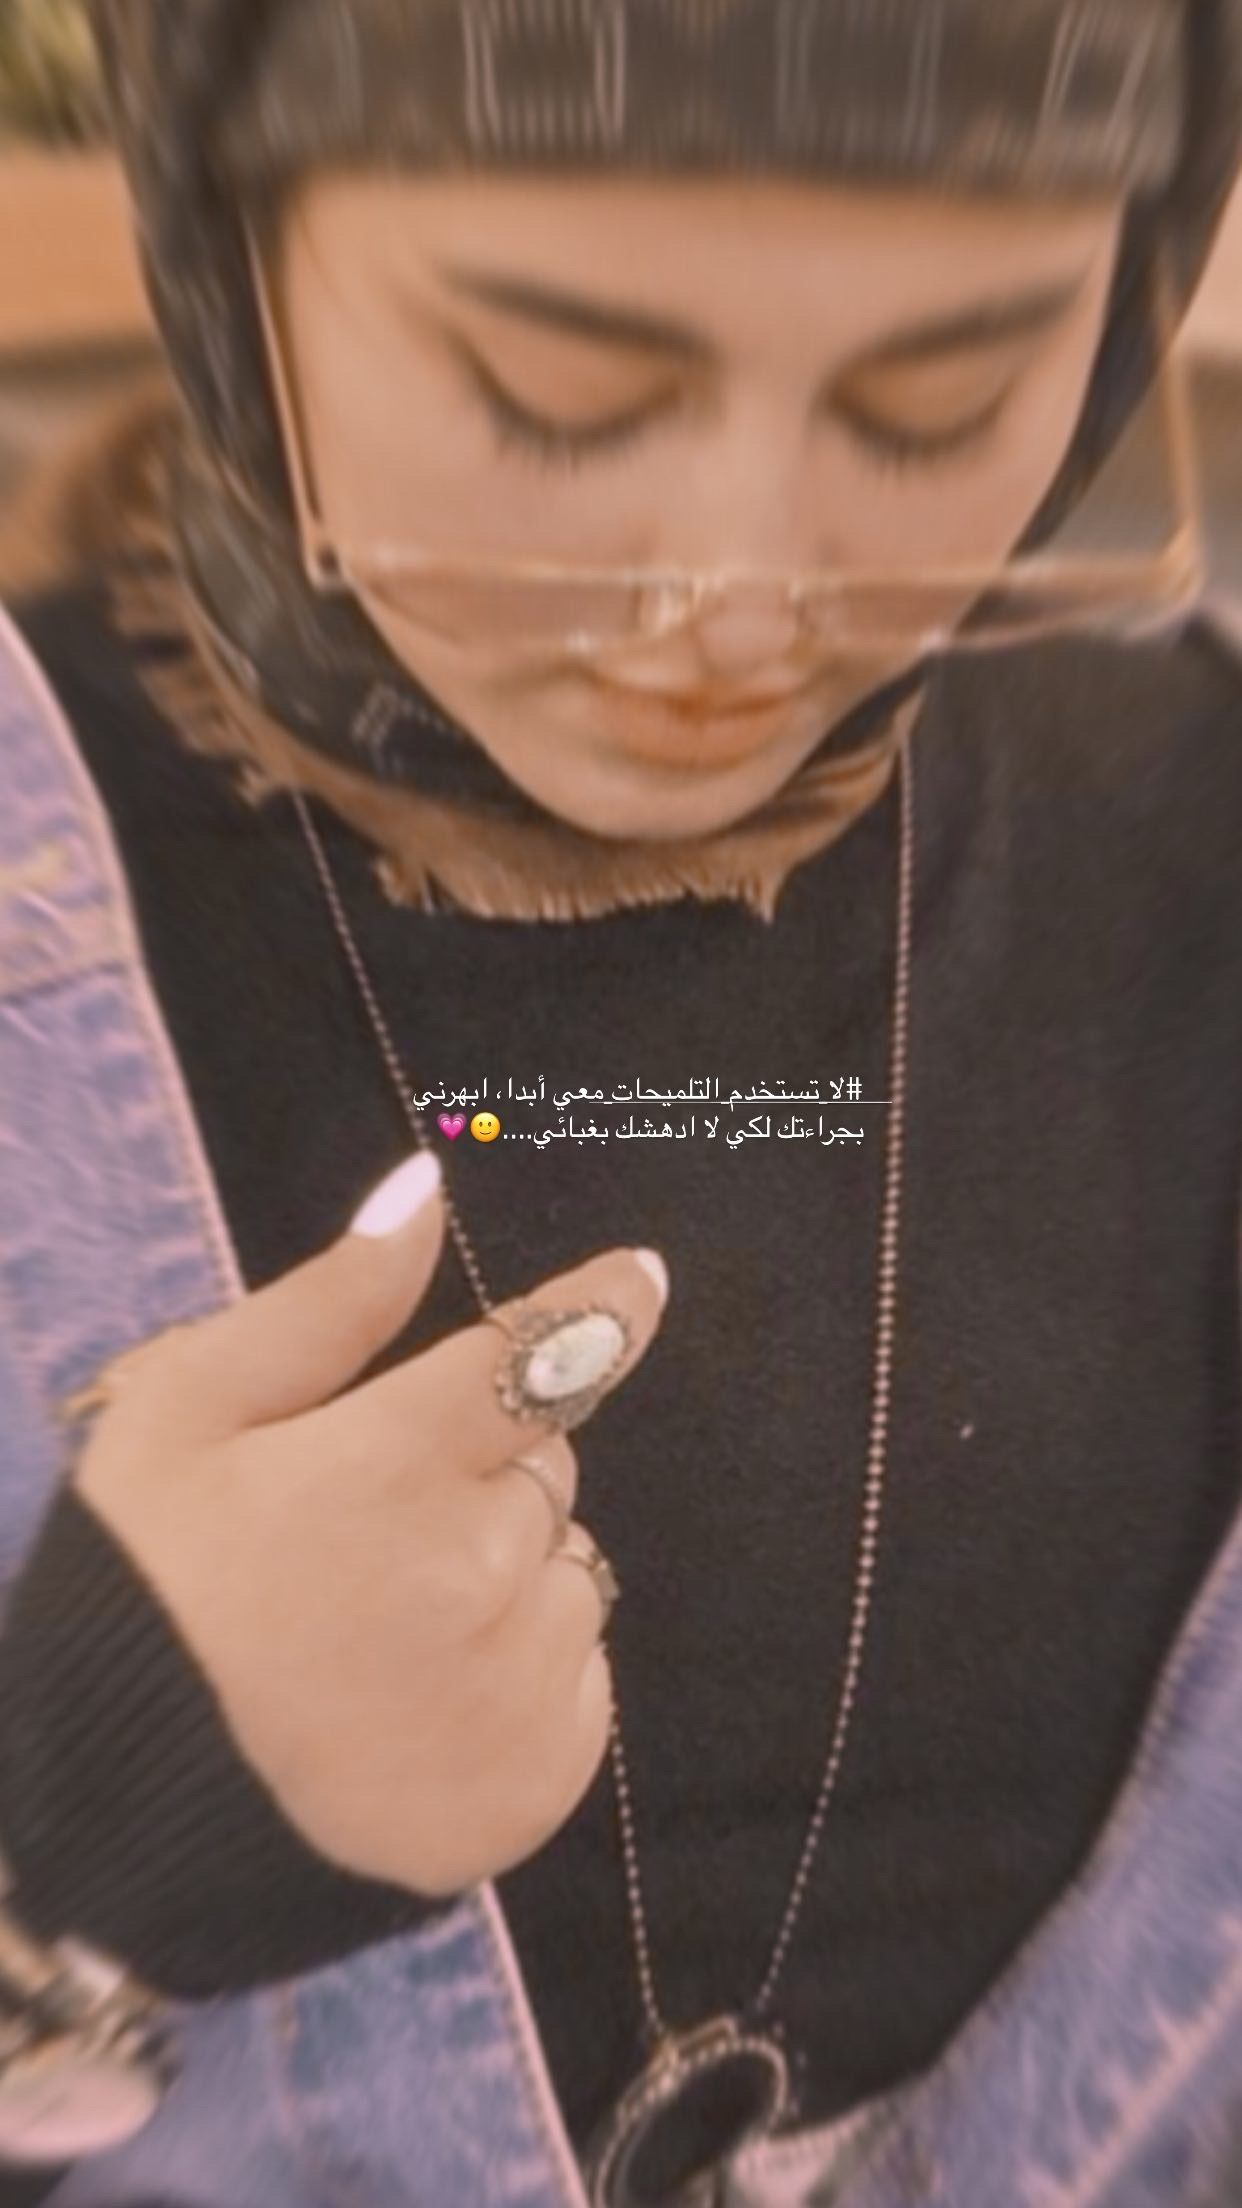 Pin By Mexxr Iem On ستوريات Photo Ideas Girl Dog Tag Necklace Girl Pictures